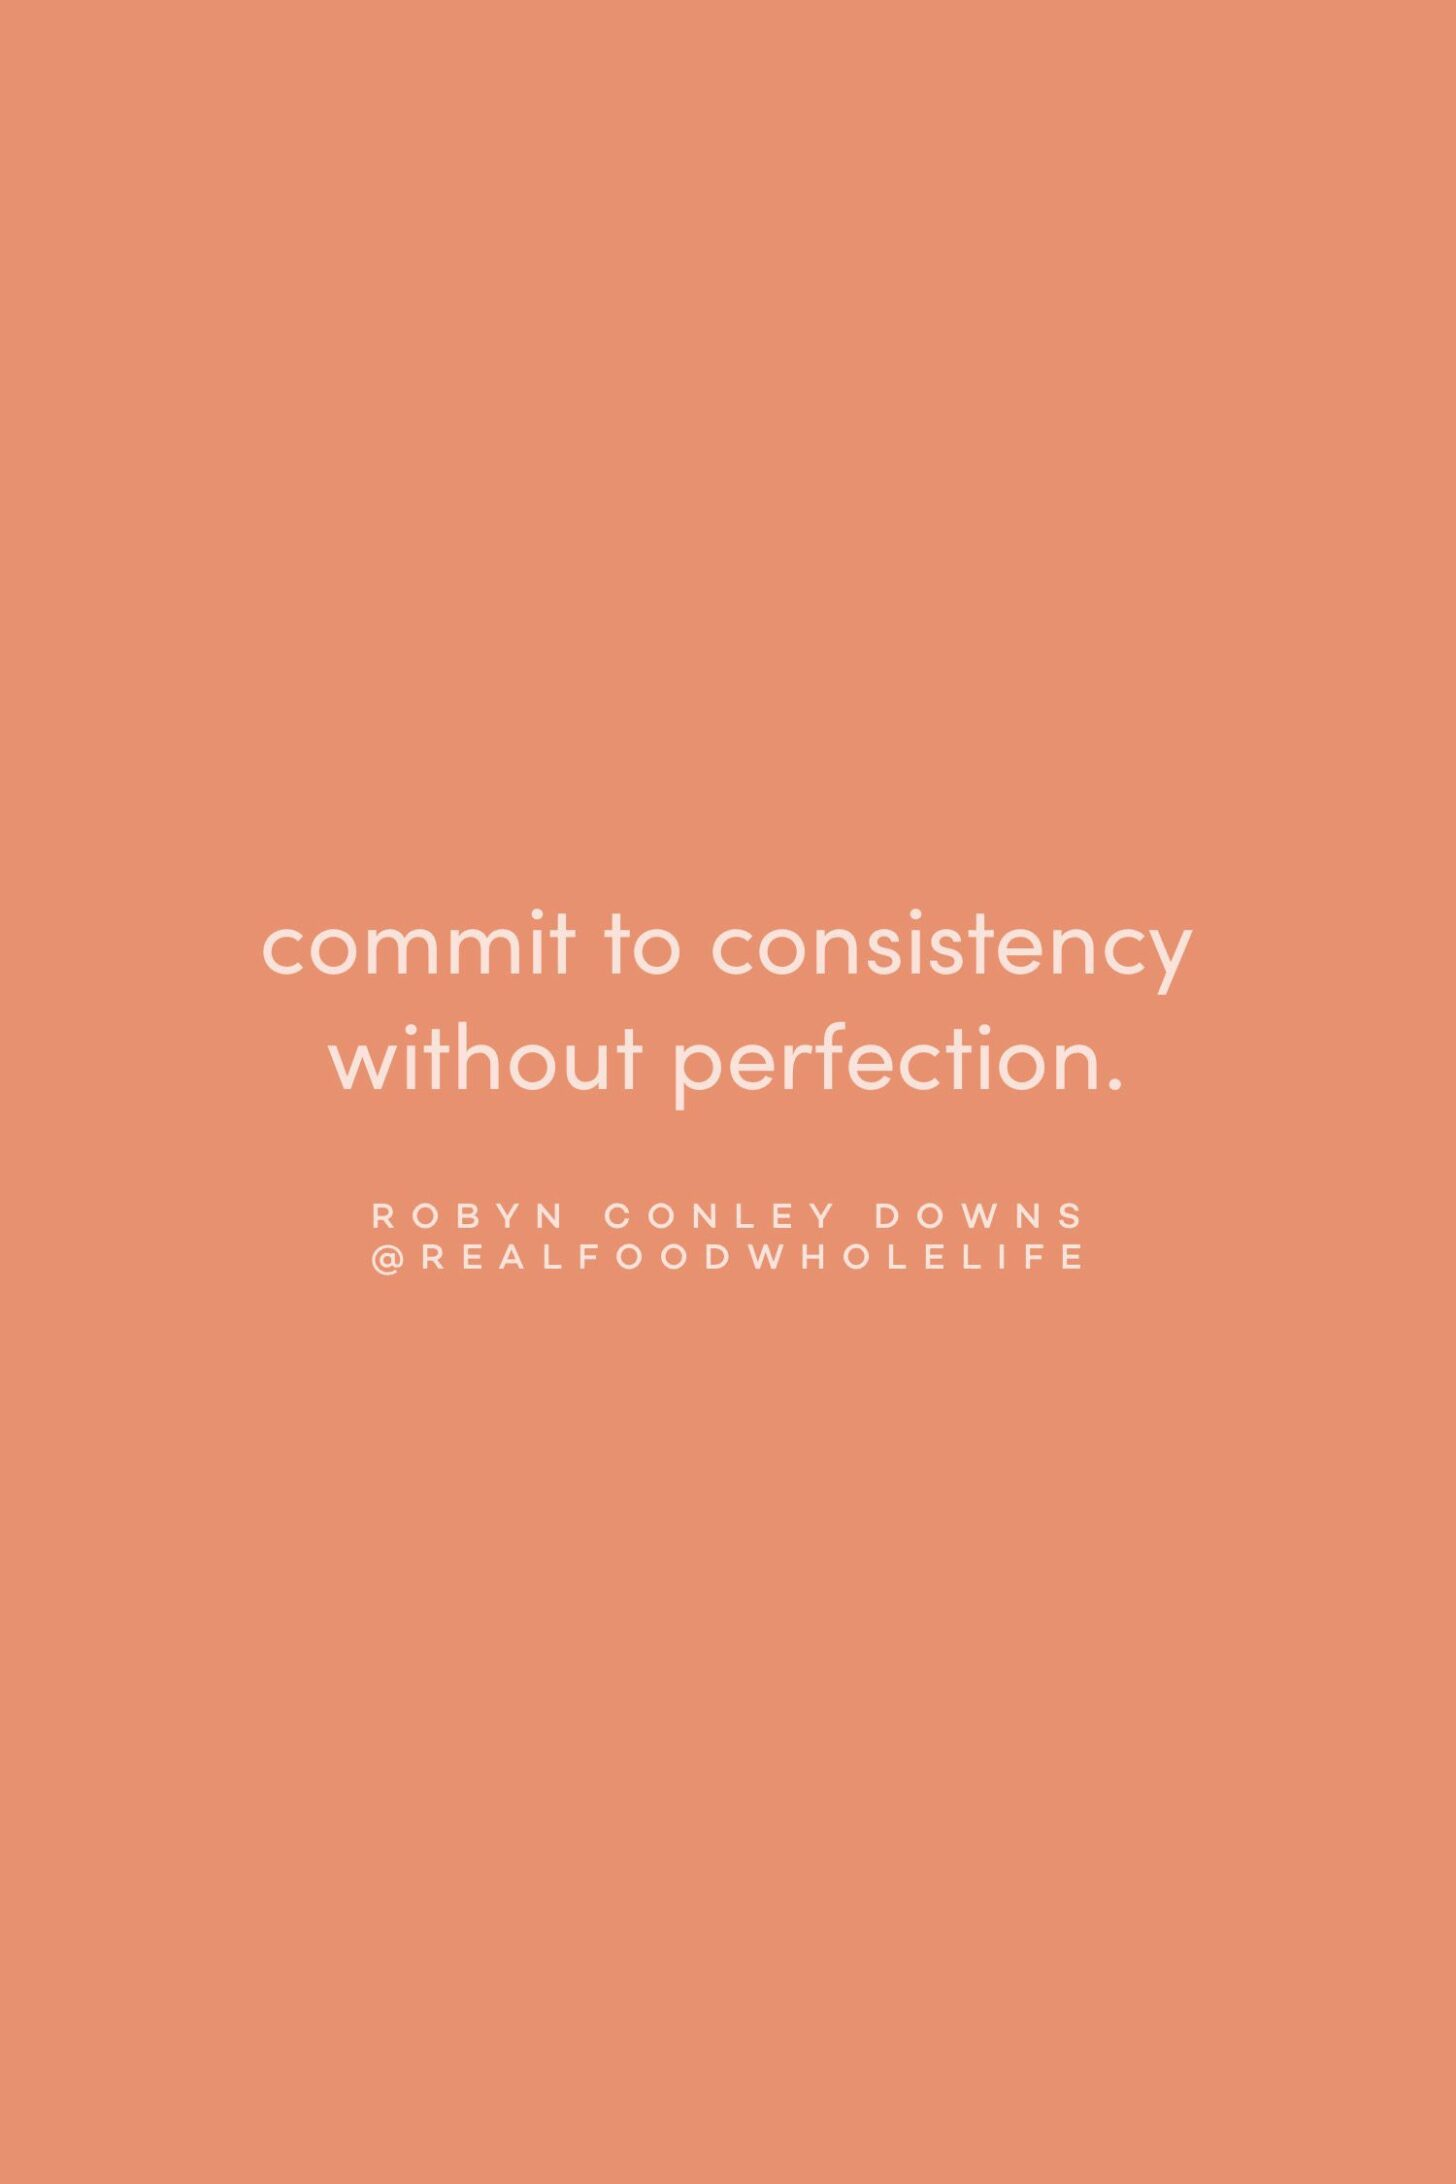 Quote on consistency without perfection from Robyn Conley Downs on the Feel Good Effect Podcast #realfoodwholelife #feelgoodeffectpodcast #wellnesspodcast #motivationalquote #inspirationalquote #positivityquote #selfcarequote #wellnessquote #perfectionquote #productivityquote #habitsquote #routinesquote